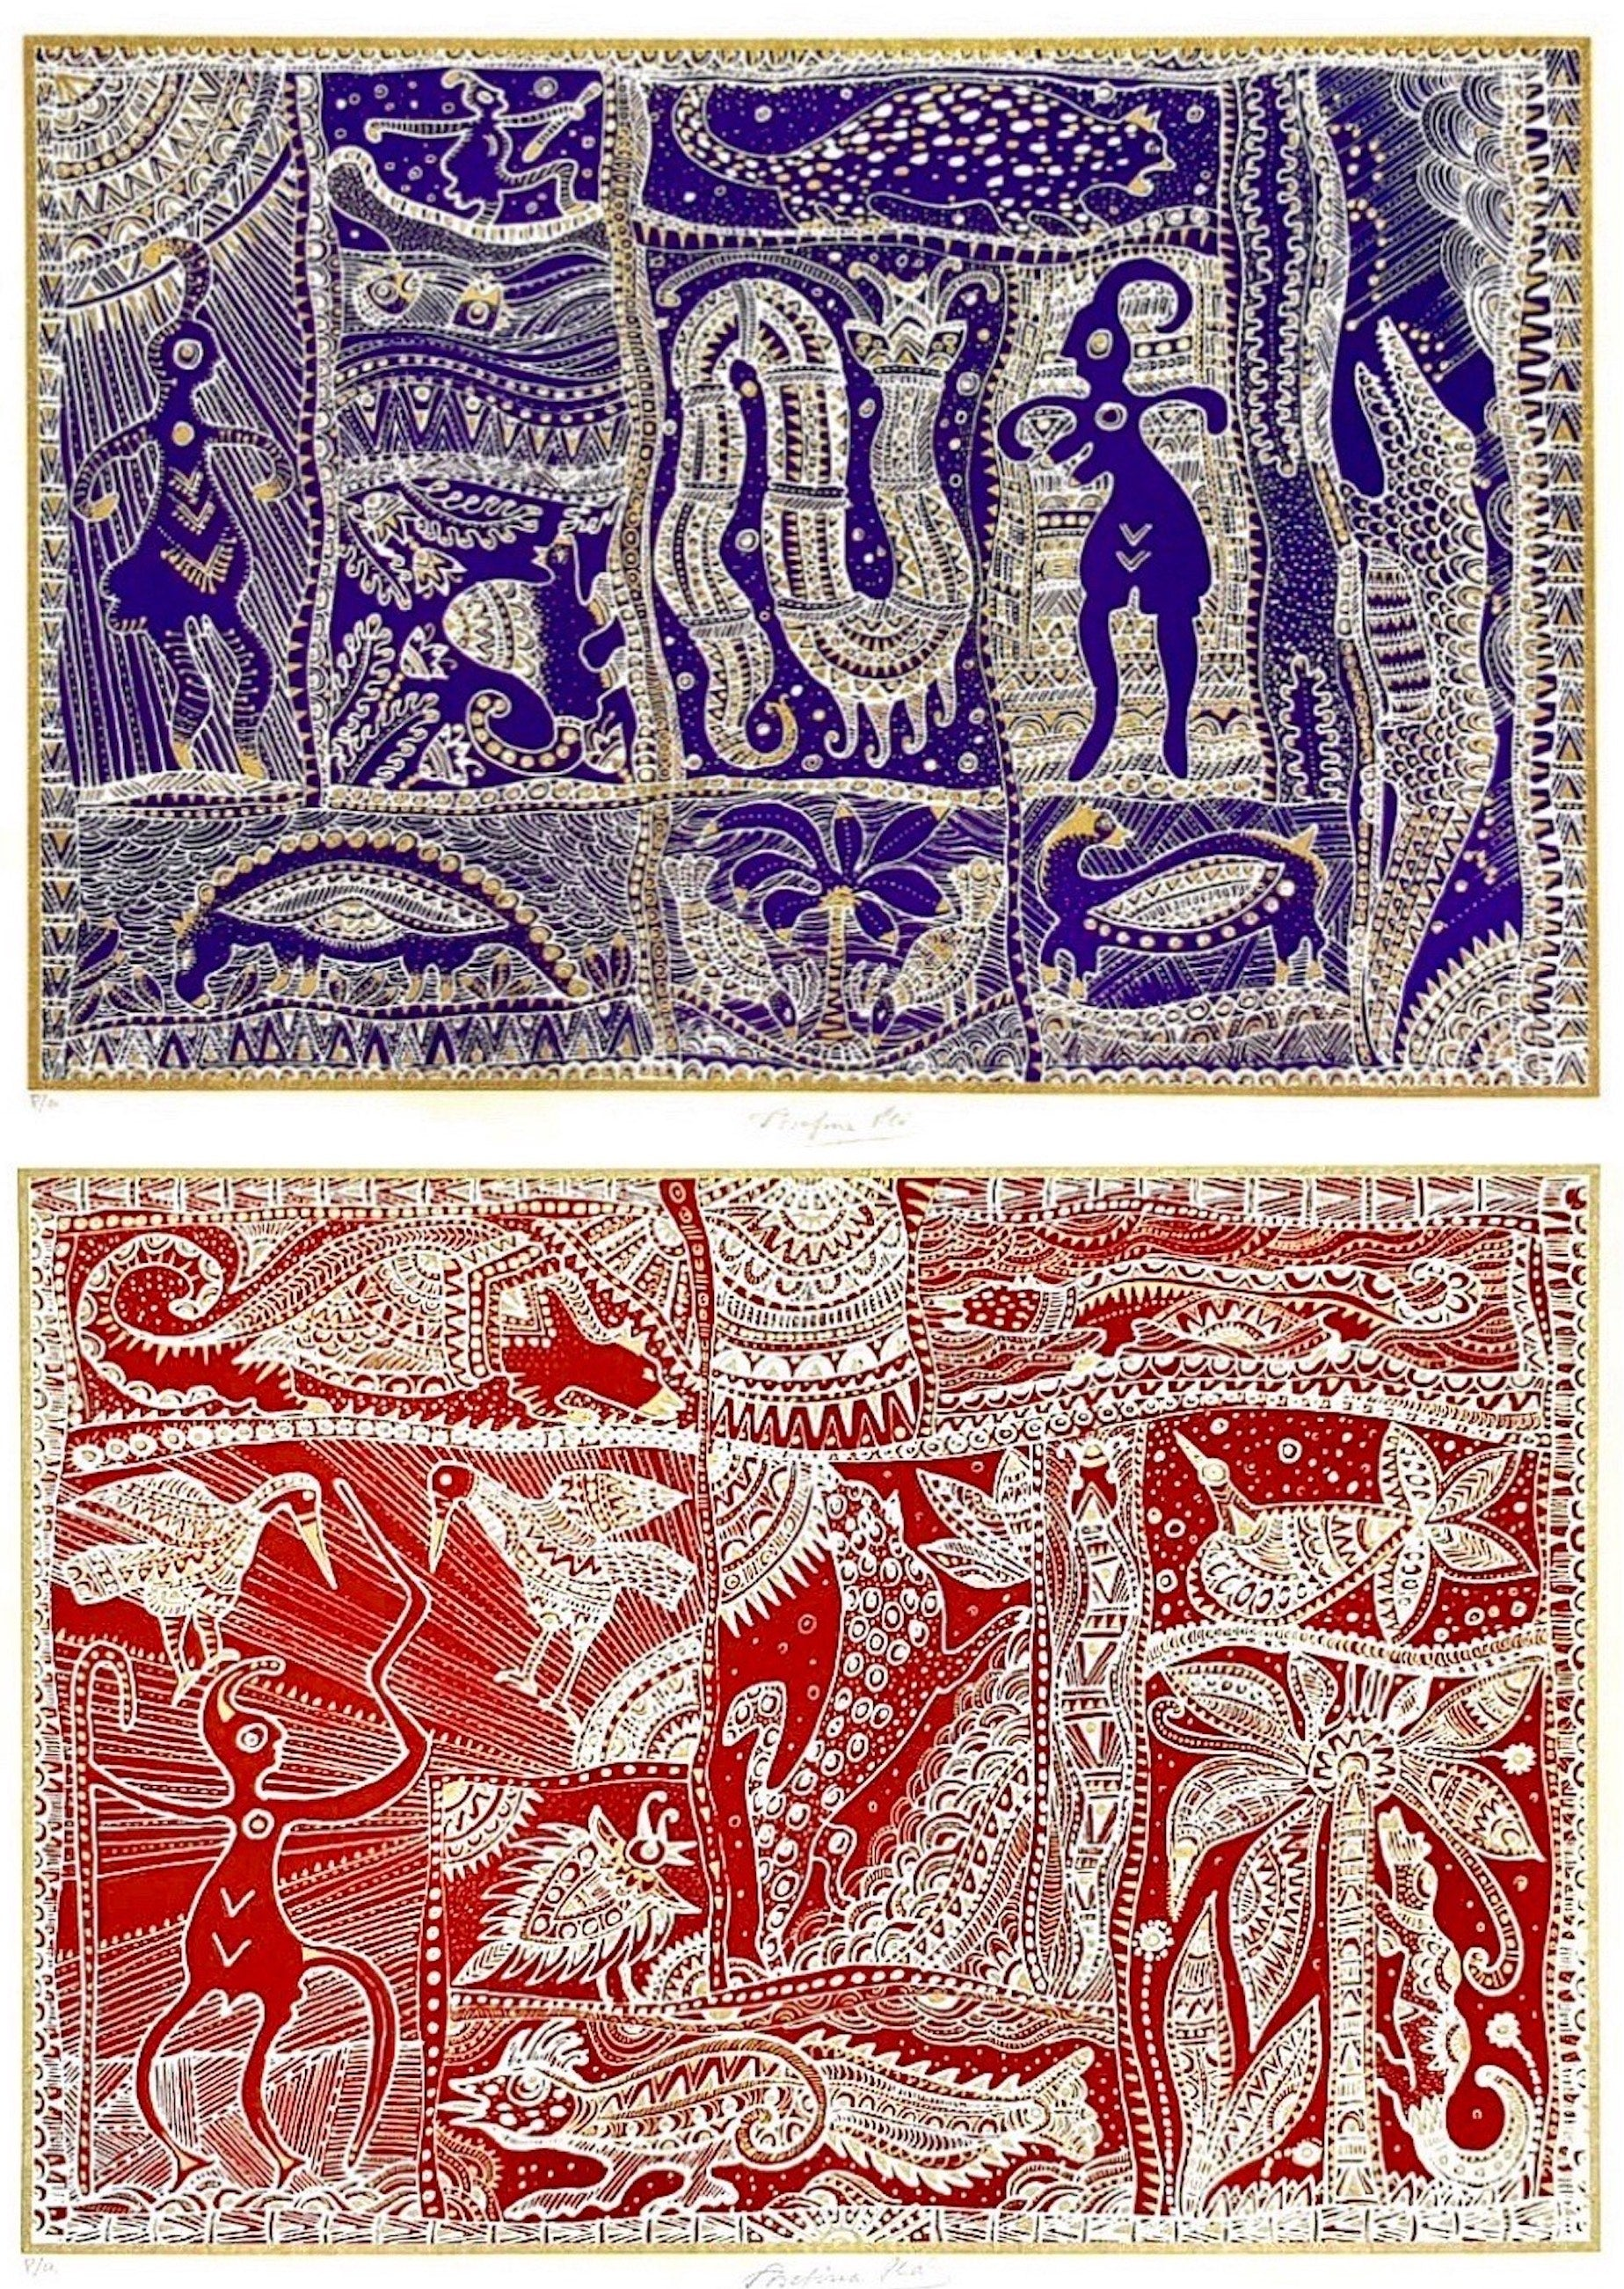 """Payaguá Series by Josefina Plá, Serigraphy, 1980. """"These works on paper by Renaissance woman Josefina Plá encapsulate my idea of America,"""" Barrail says, """"in their depictions of indigenous emotions and customs, as seen by a European intellectual living in the heart of South America. Plá was a poet, a playwright, a painter, ceramist, journalist, and teacher. A trailblazer who melded Old and New world sensibilities to create an original one without boundaries. A true America."""" Image courtesy of Pedro Barrail"""